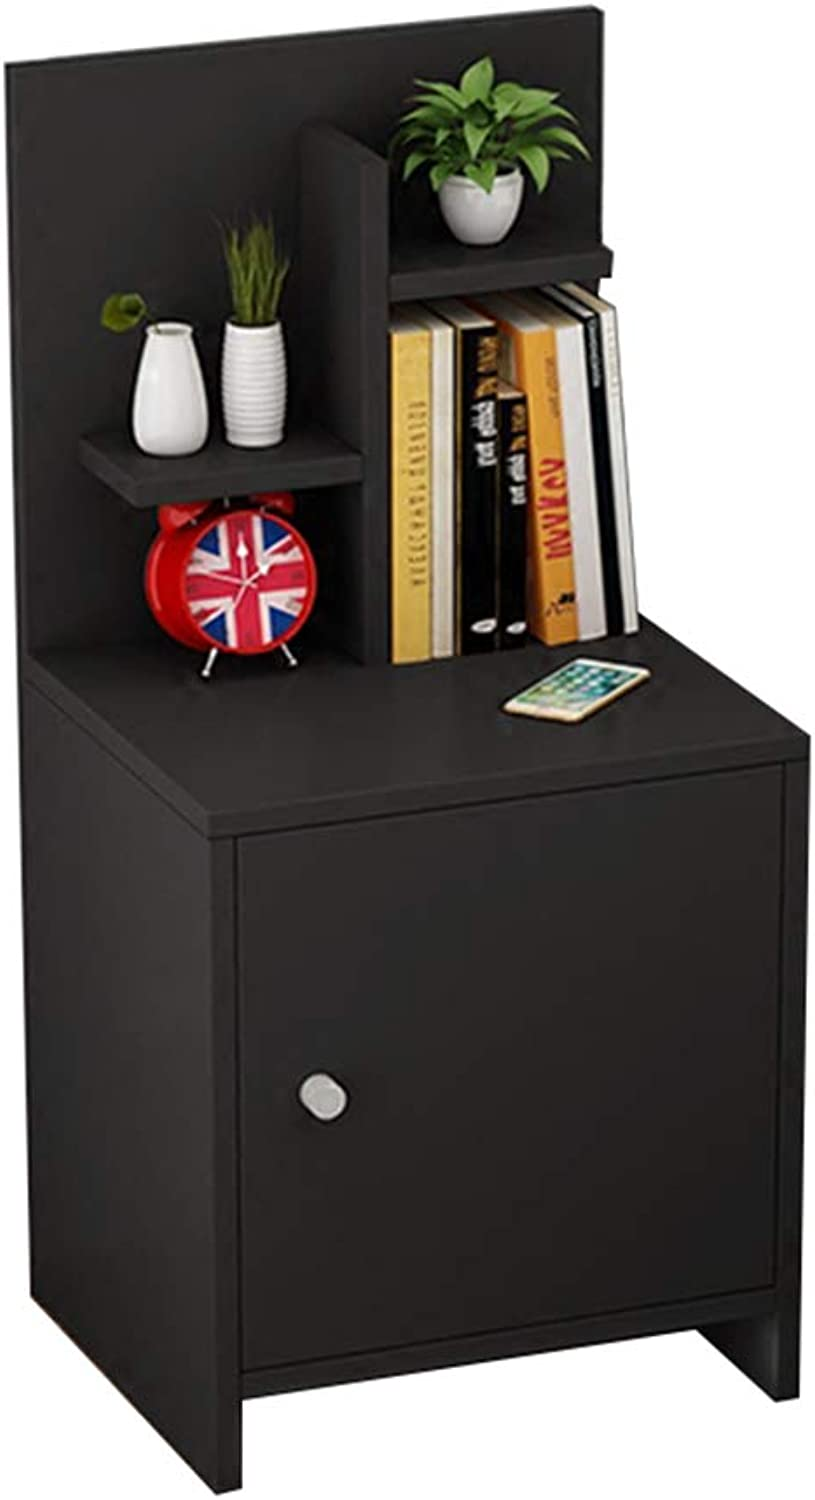 GJM Shop Bedside Table, Wood End Table Nightstand Bedside Cabinet with Bookshelf and 1 Lockers, 36 x 30 x 75CM (color   B)